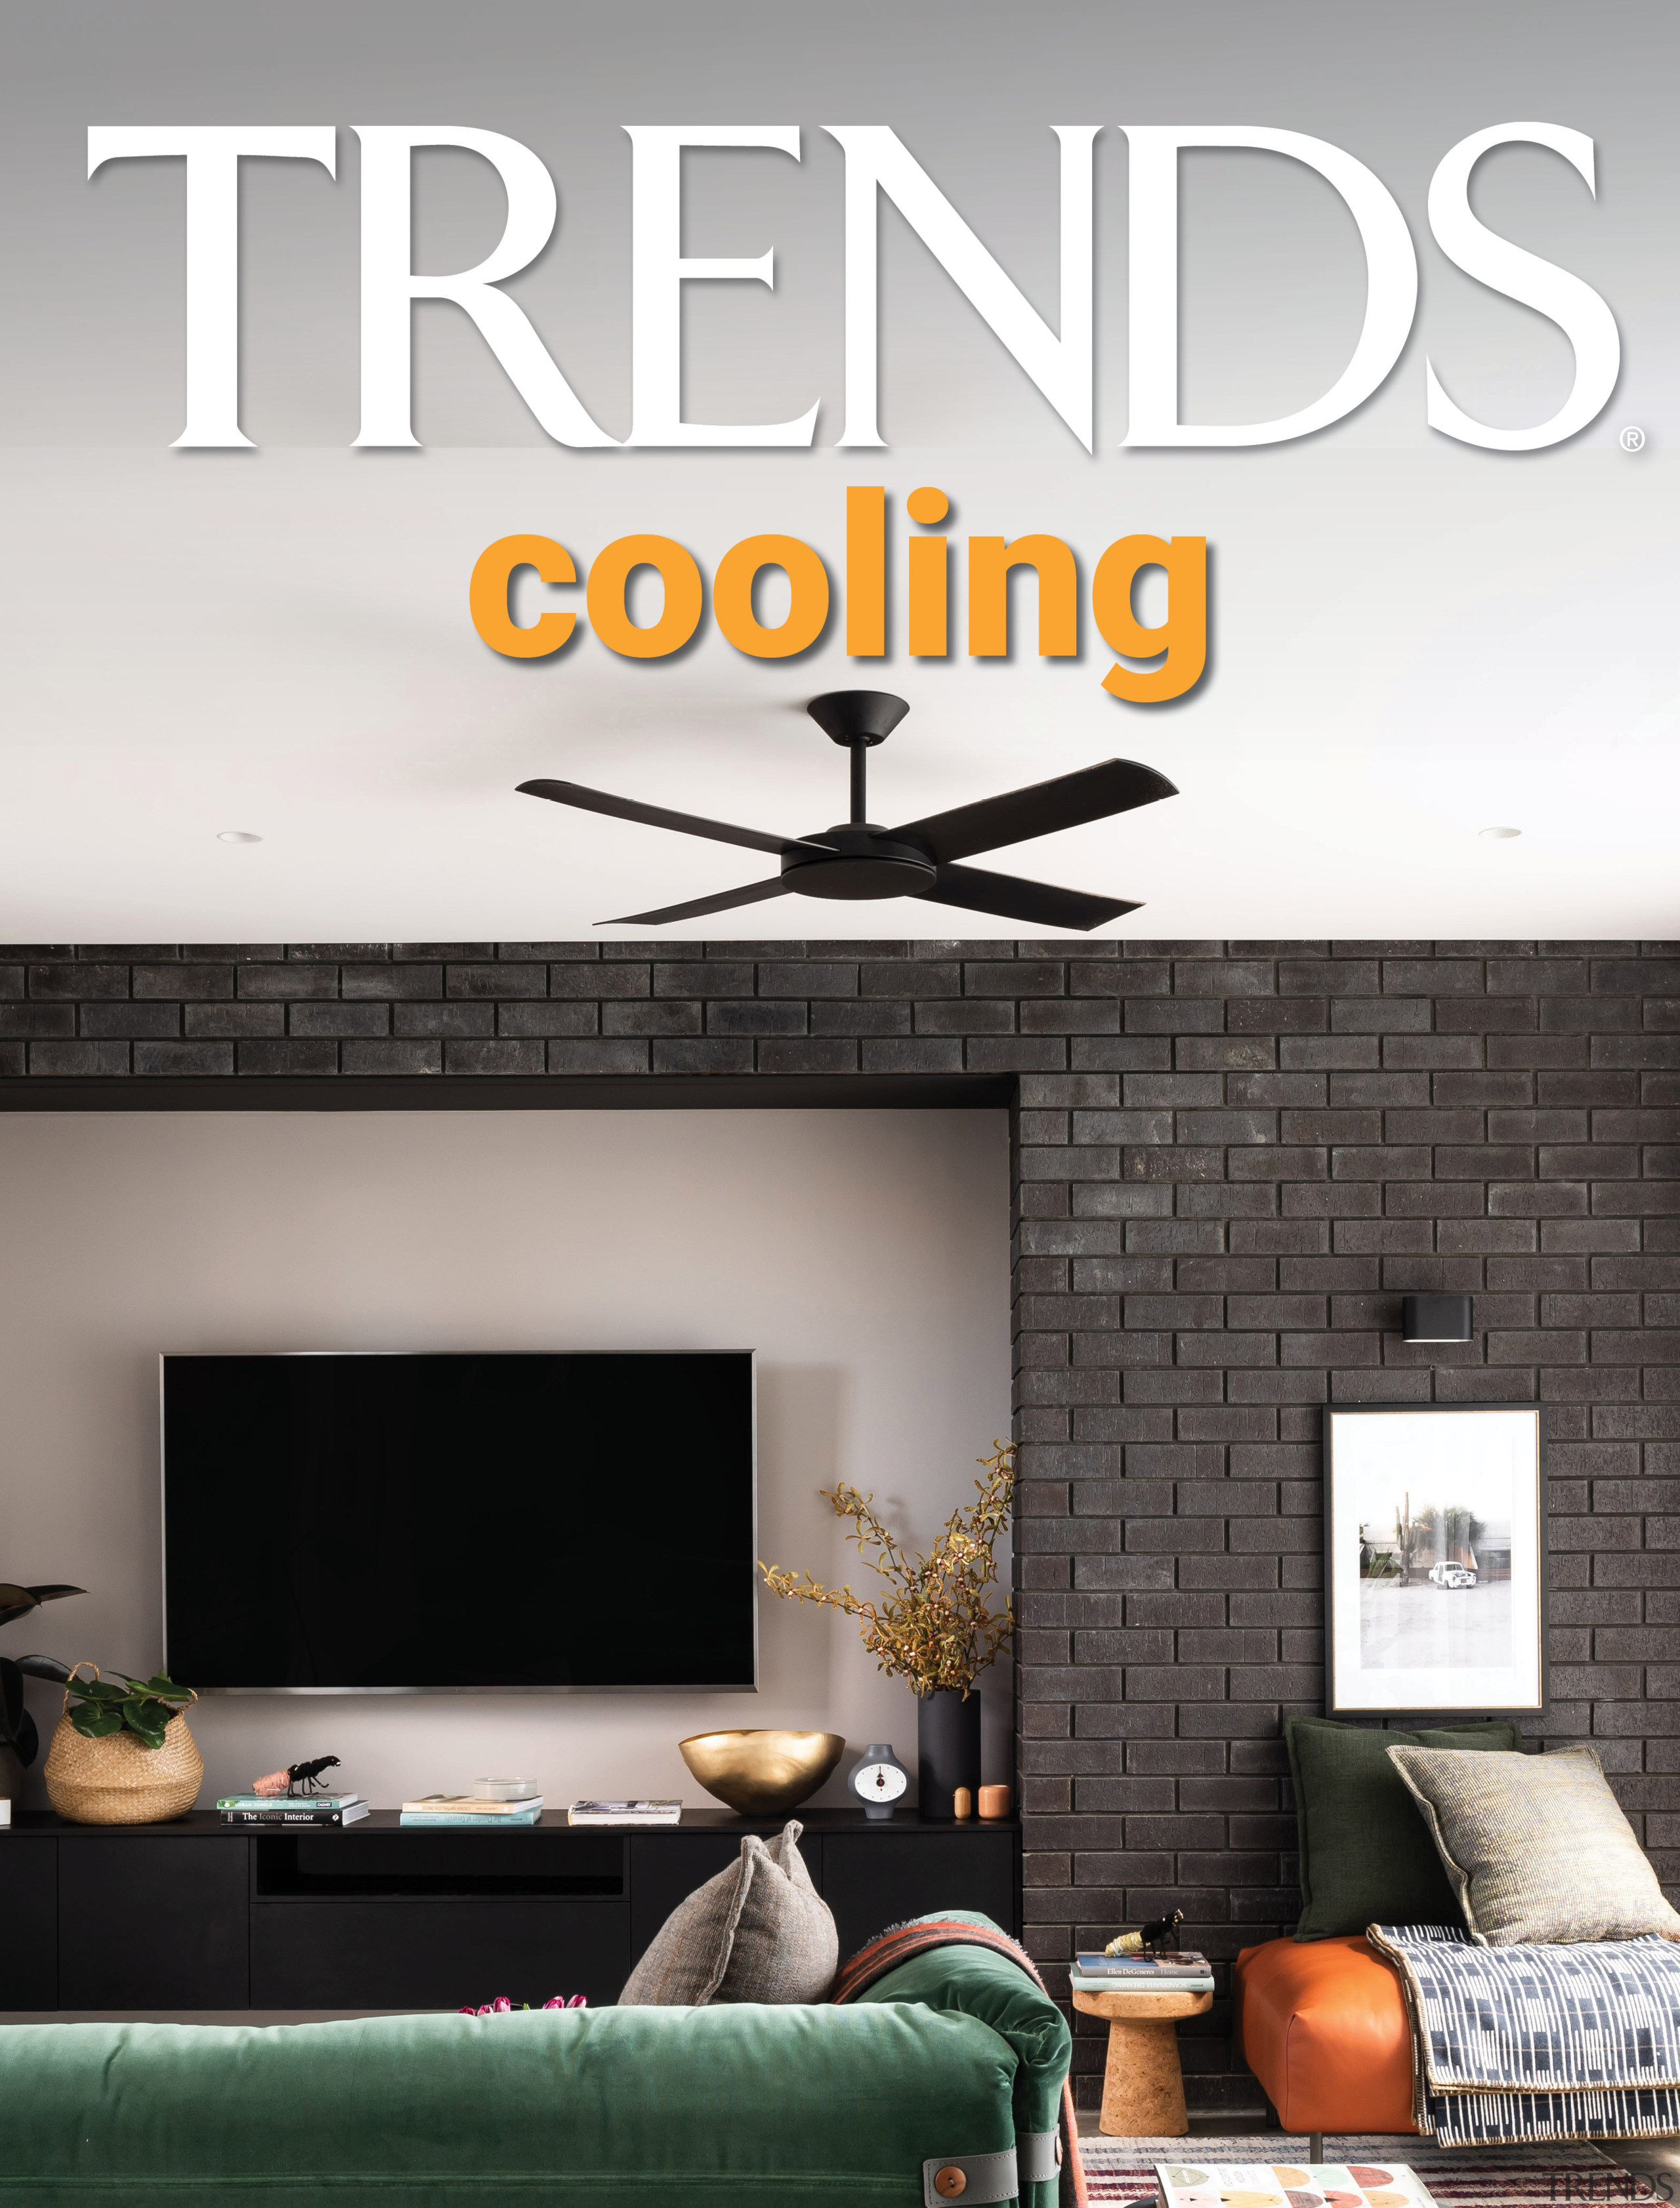 TRENDS MINI COVER cooling -